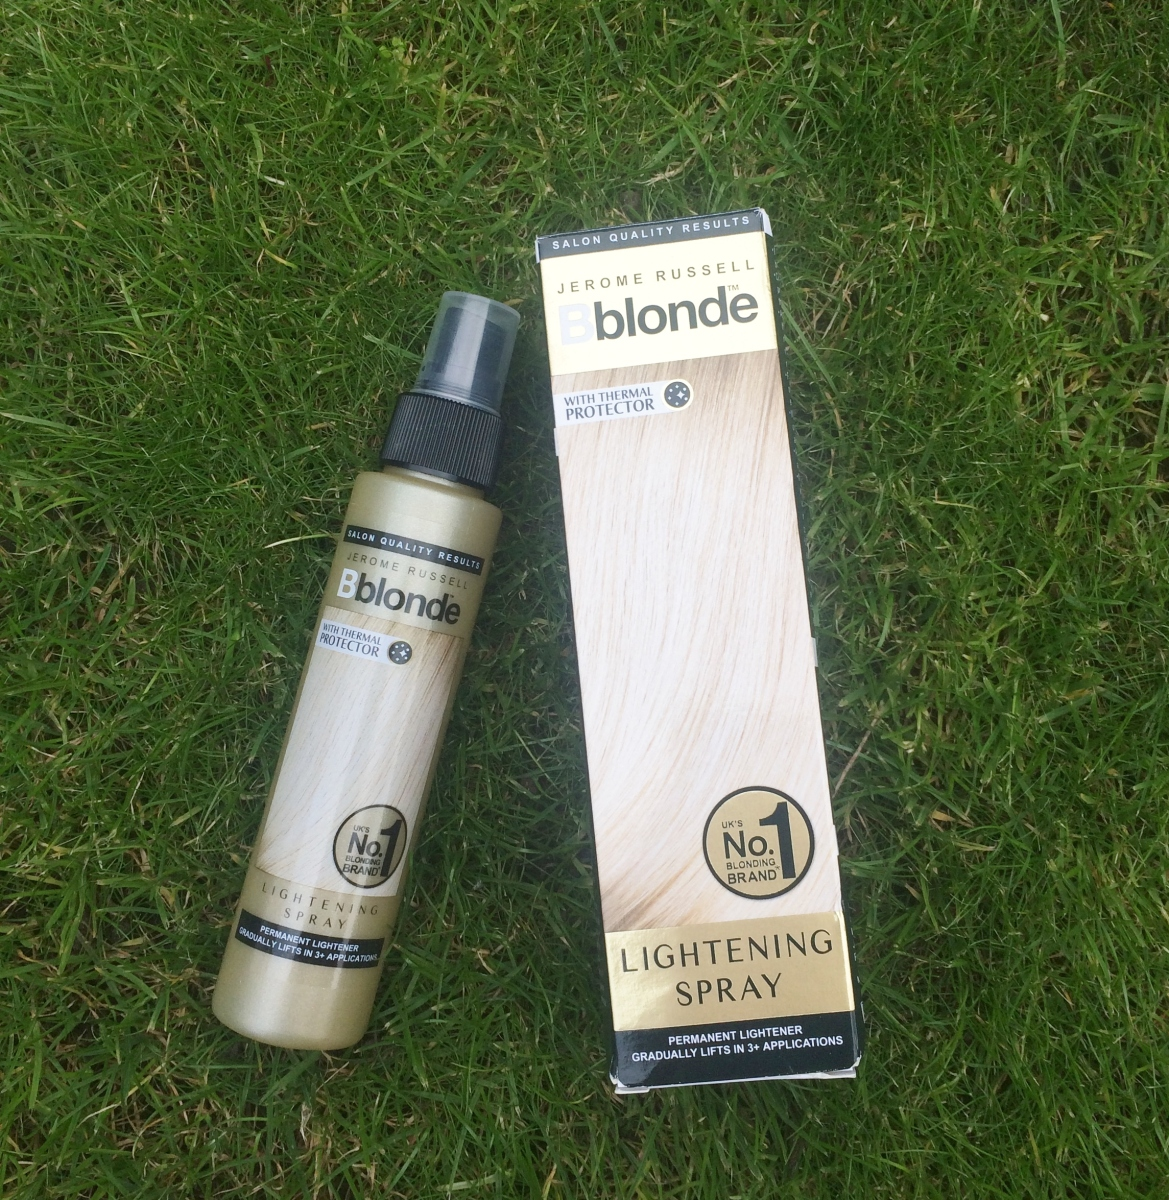 Bblonde Lightening Spray Review